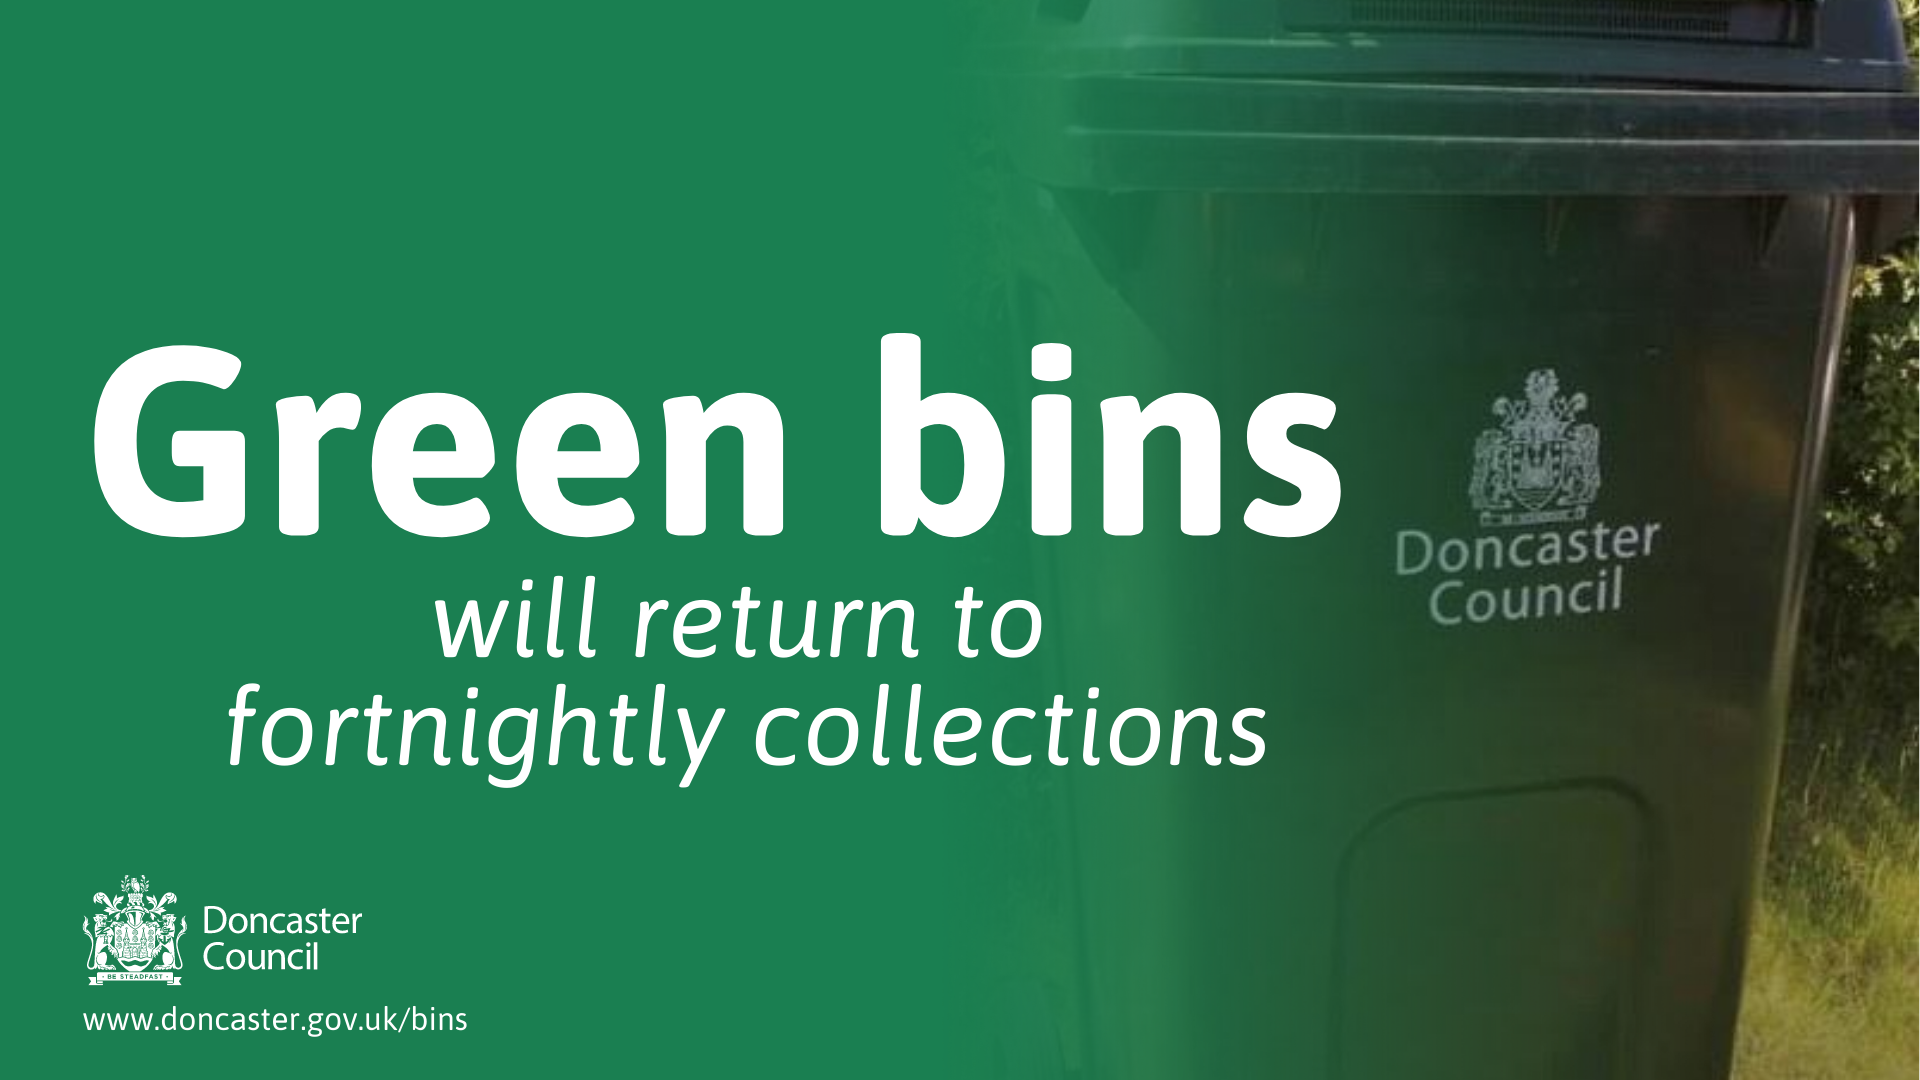 Green bins returning to fortnightly collections from 1st September